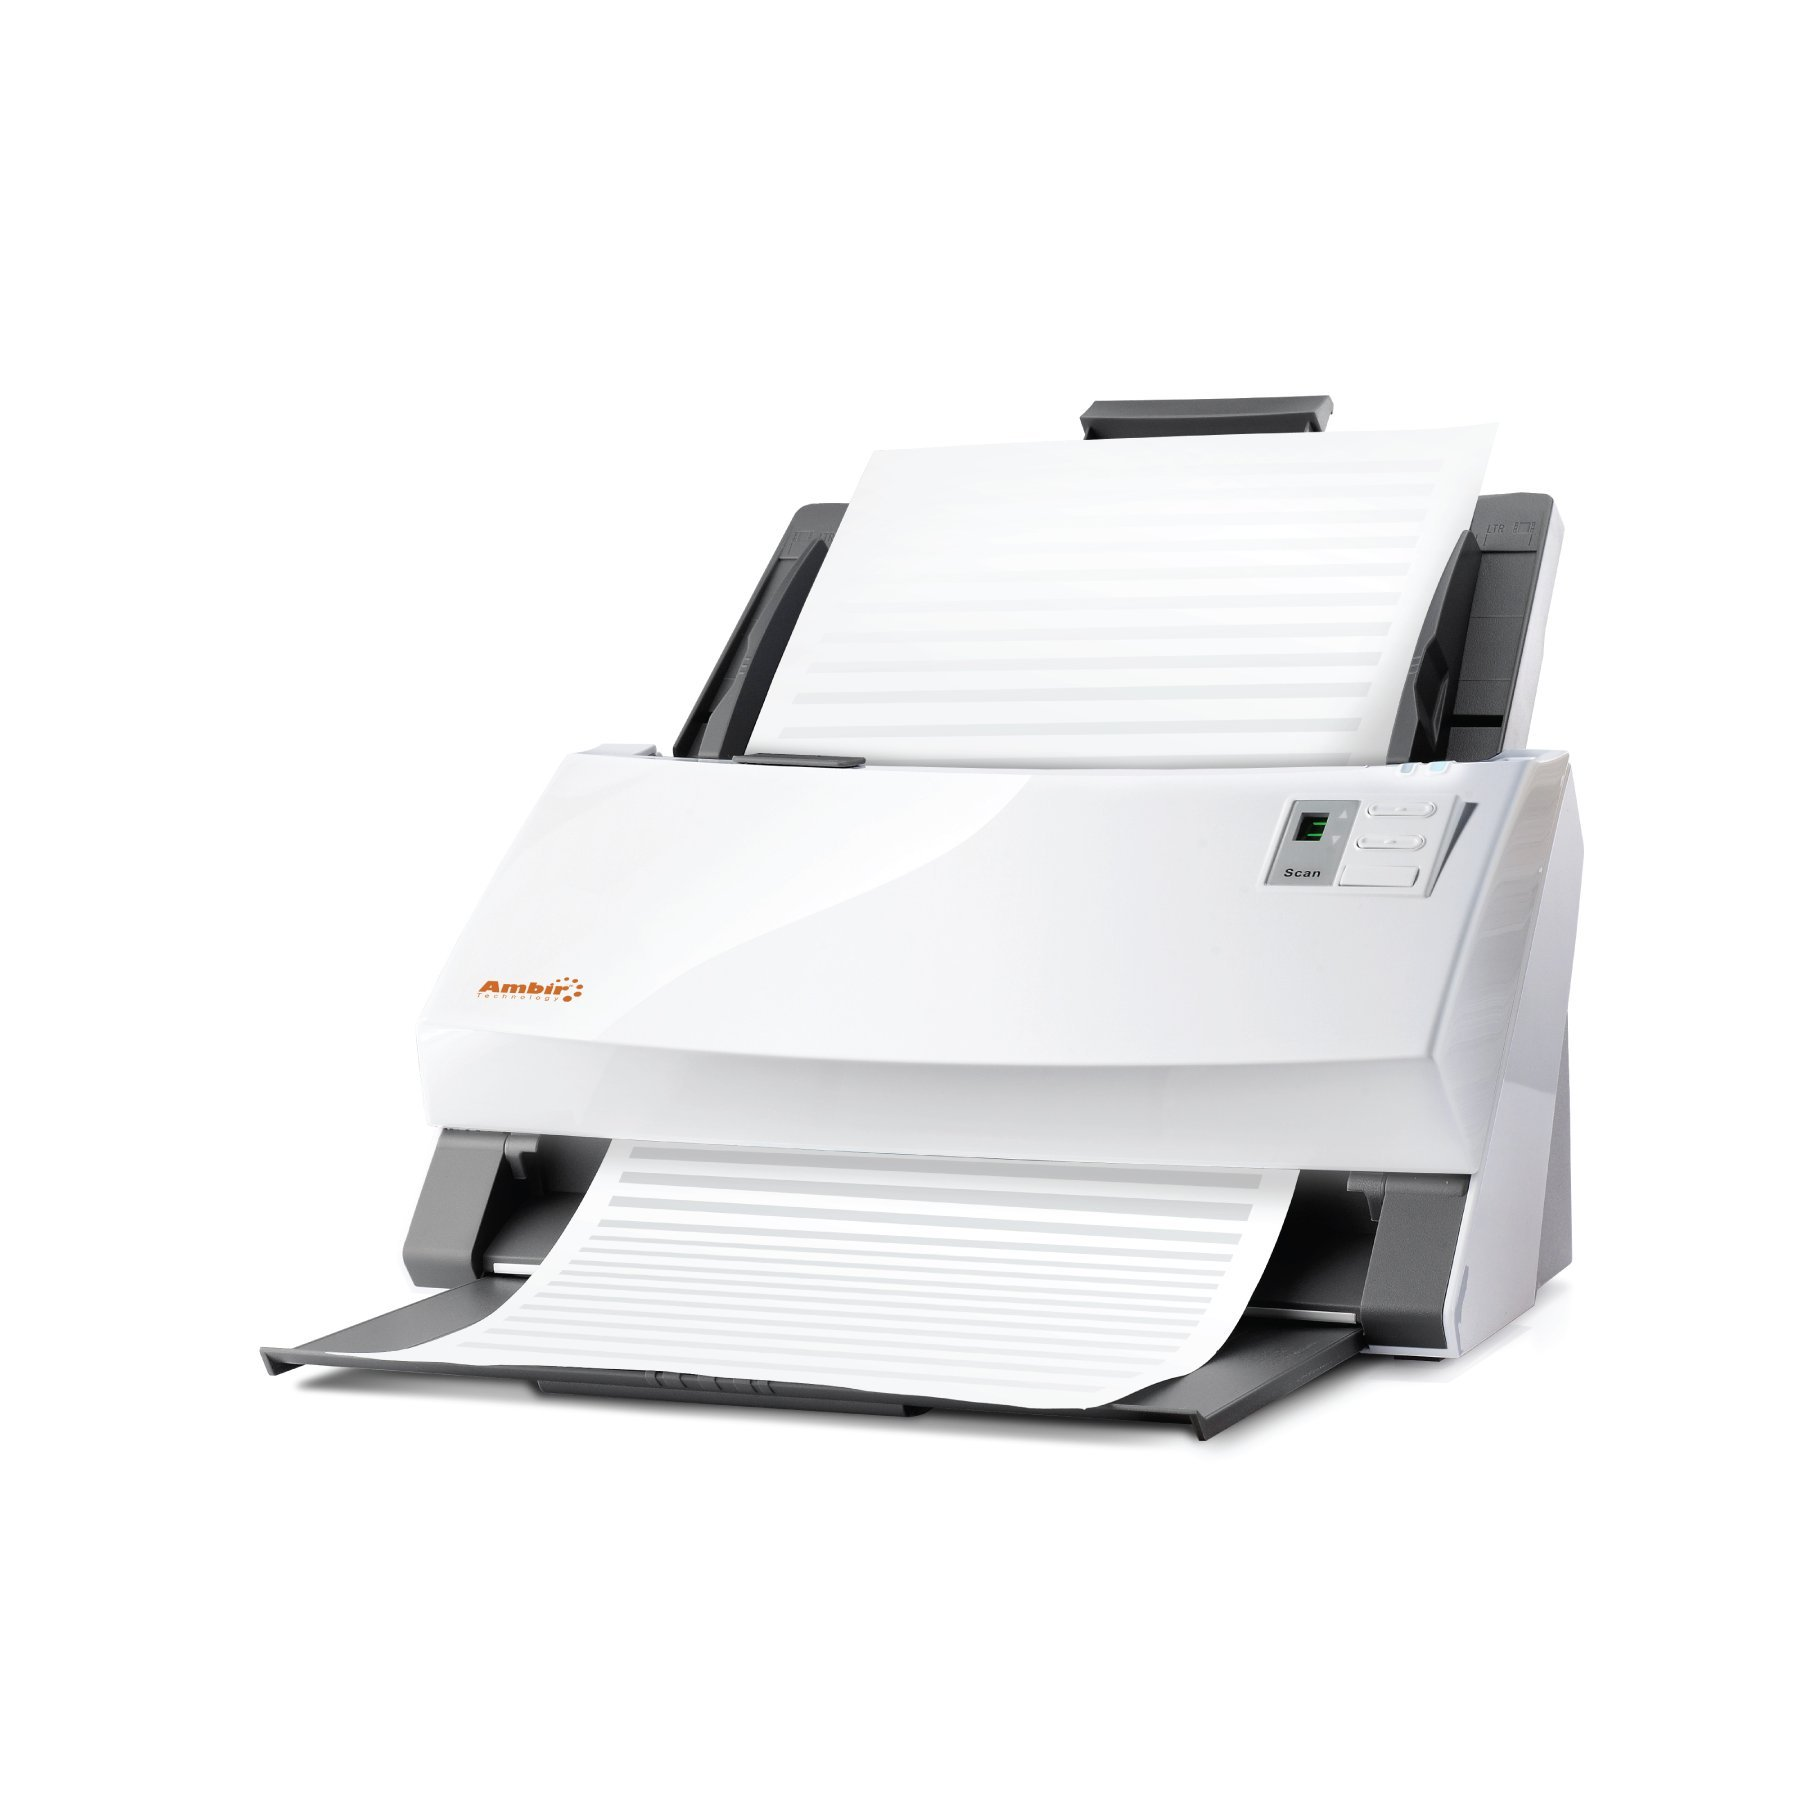 Ambir ImageScan Pro 960u (DS960-AS) 60ppm High-Speed Document Scanner with UltraSonic Misfeed Detection by Ambir